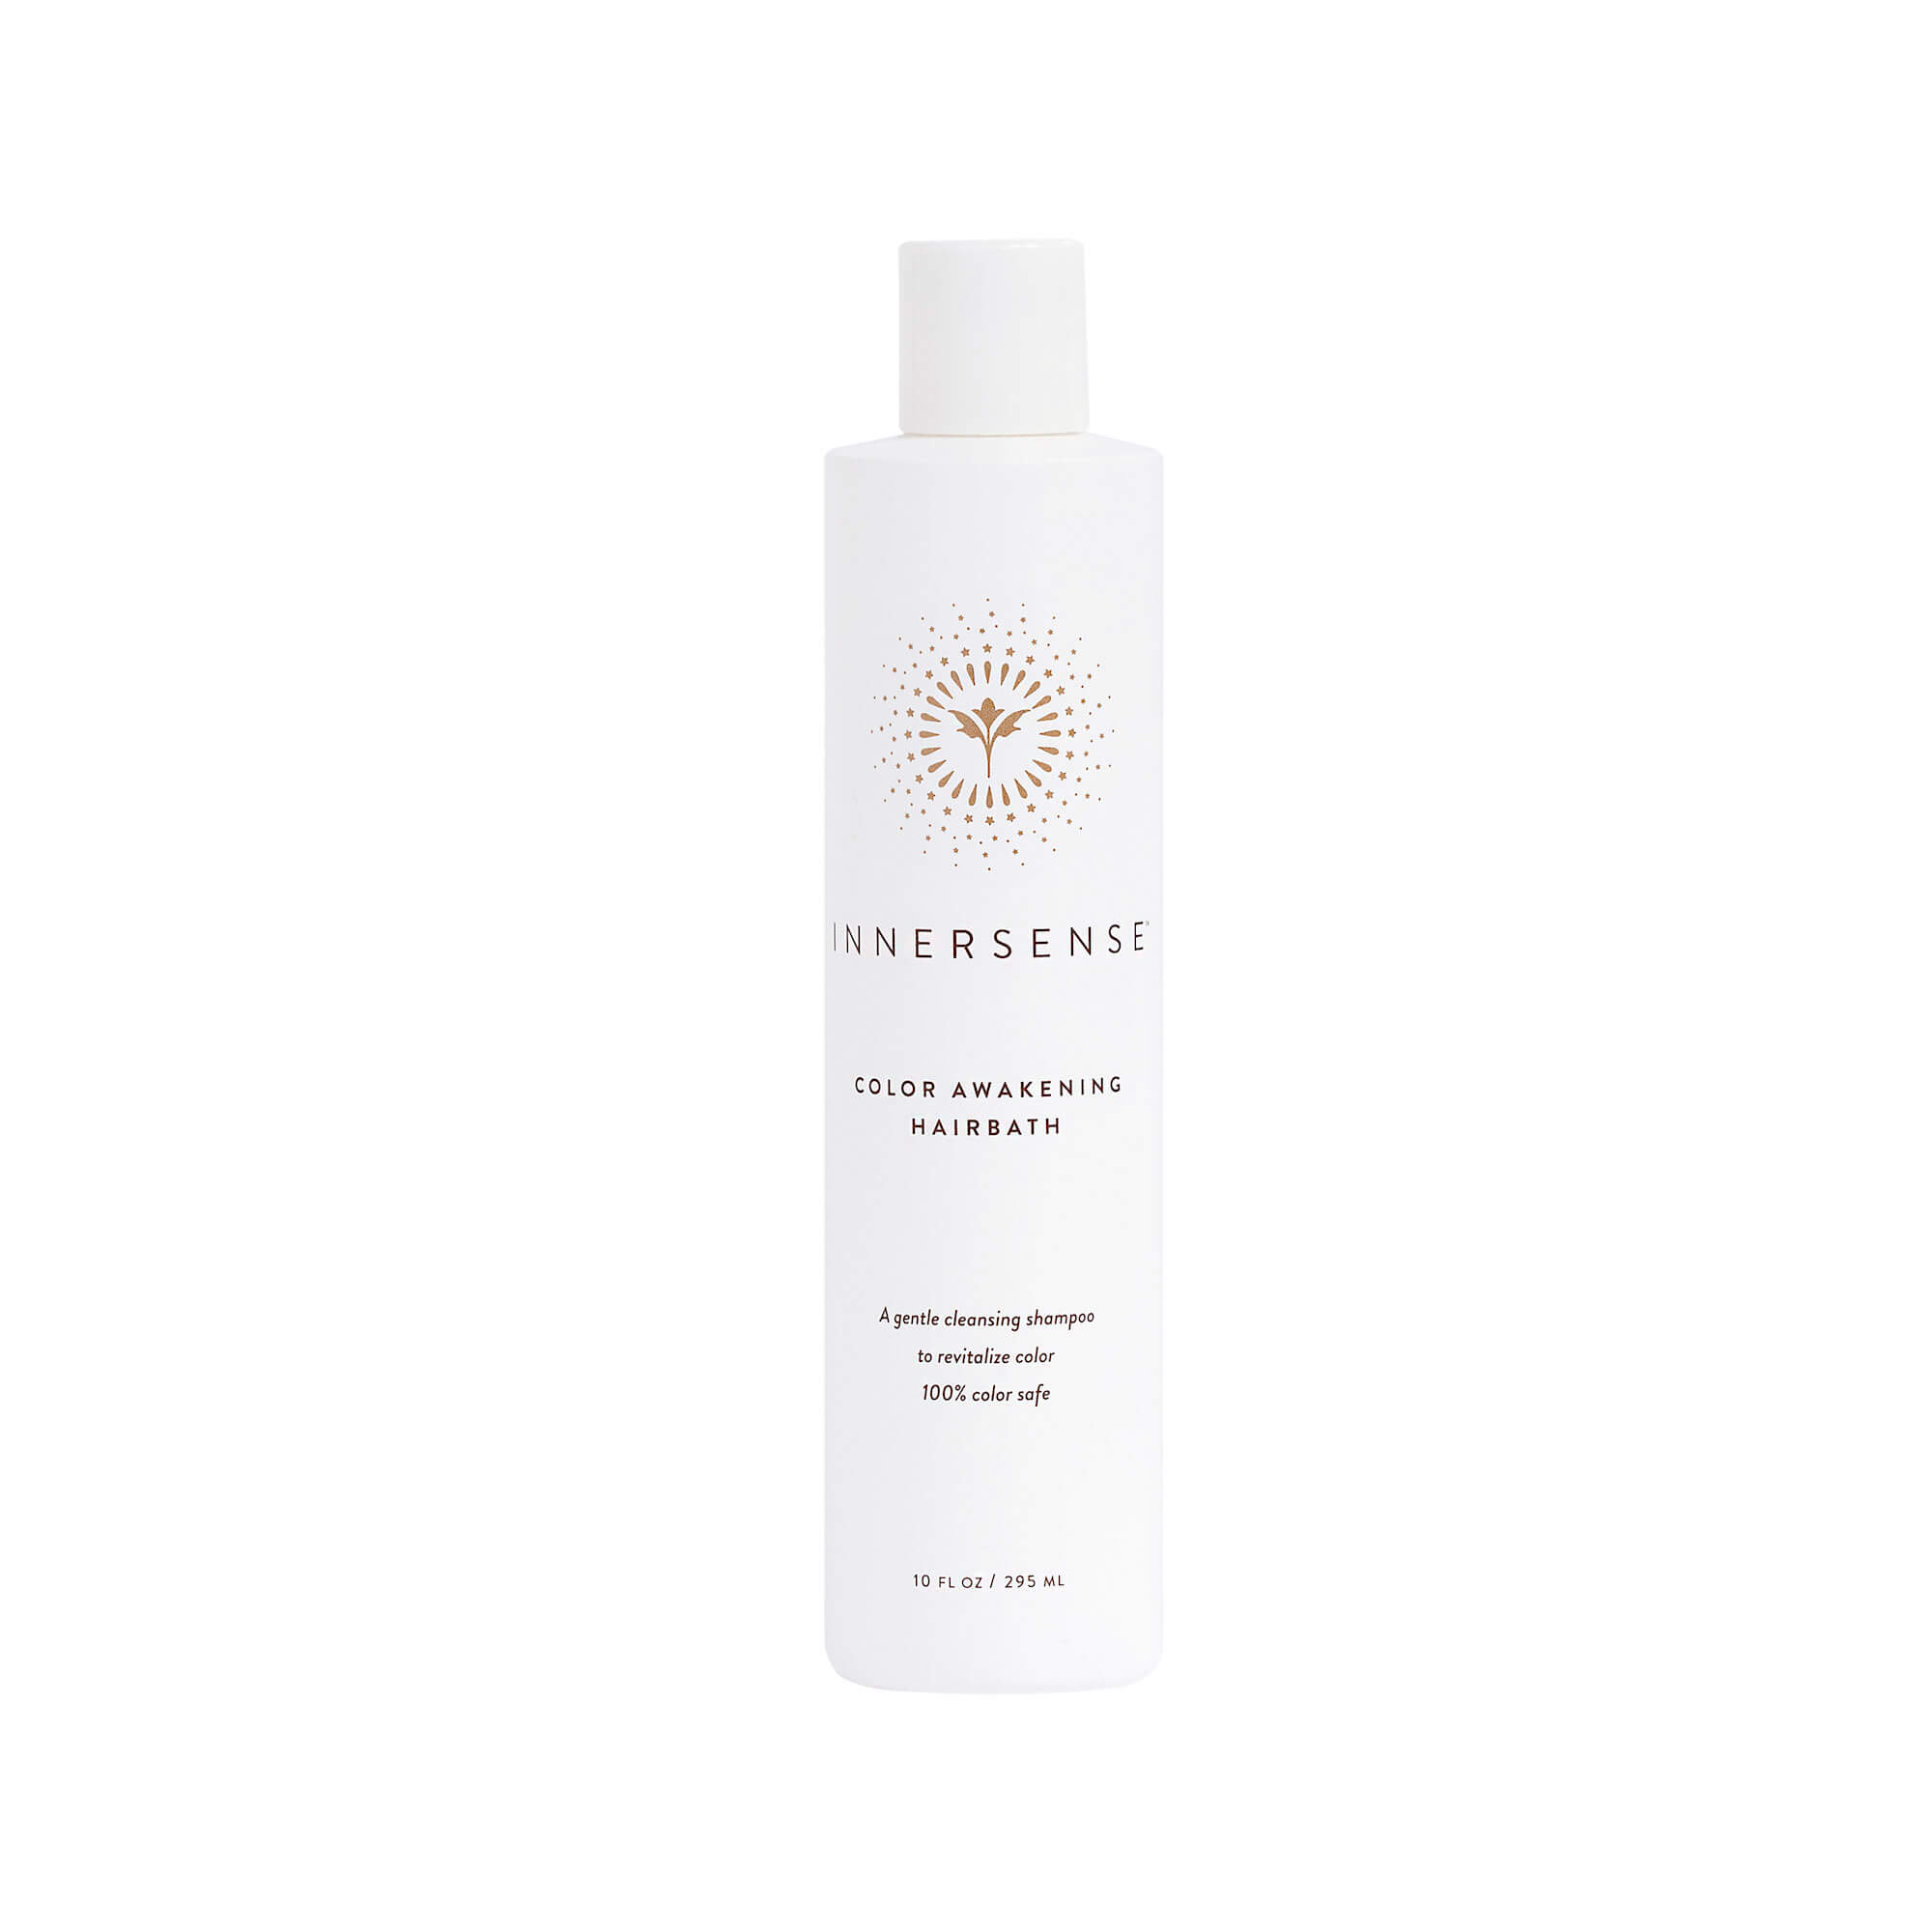 7/ Color Safe Shampoo, Innersense - Why I Love It: My go-to shampoos from Aveda and Bumble & Bumble started to cause breakouts and congestion in my skin. I switched to this natural brand that's color safe and smells amazing.